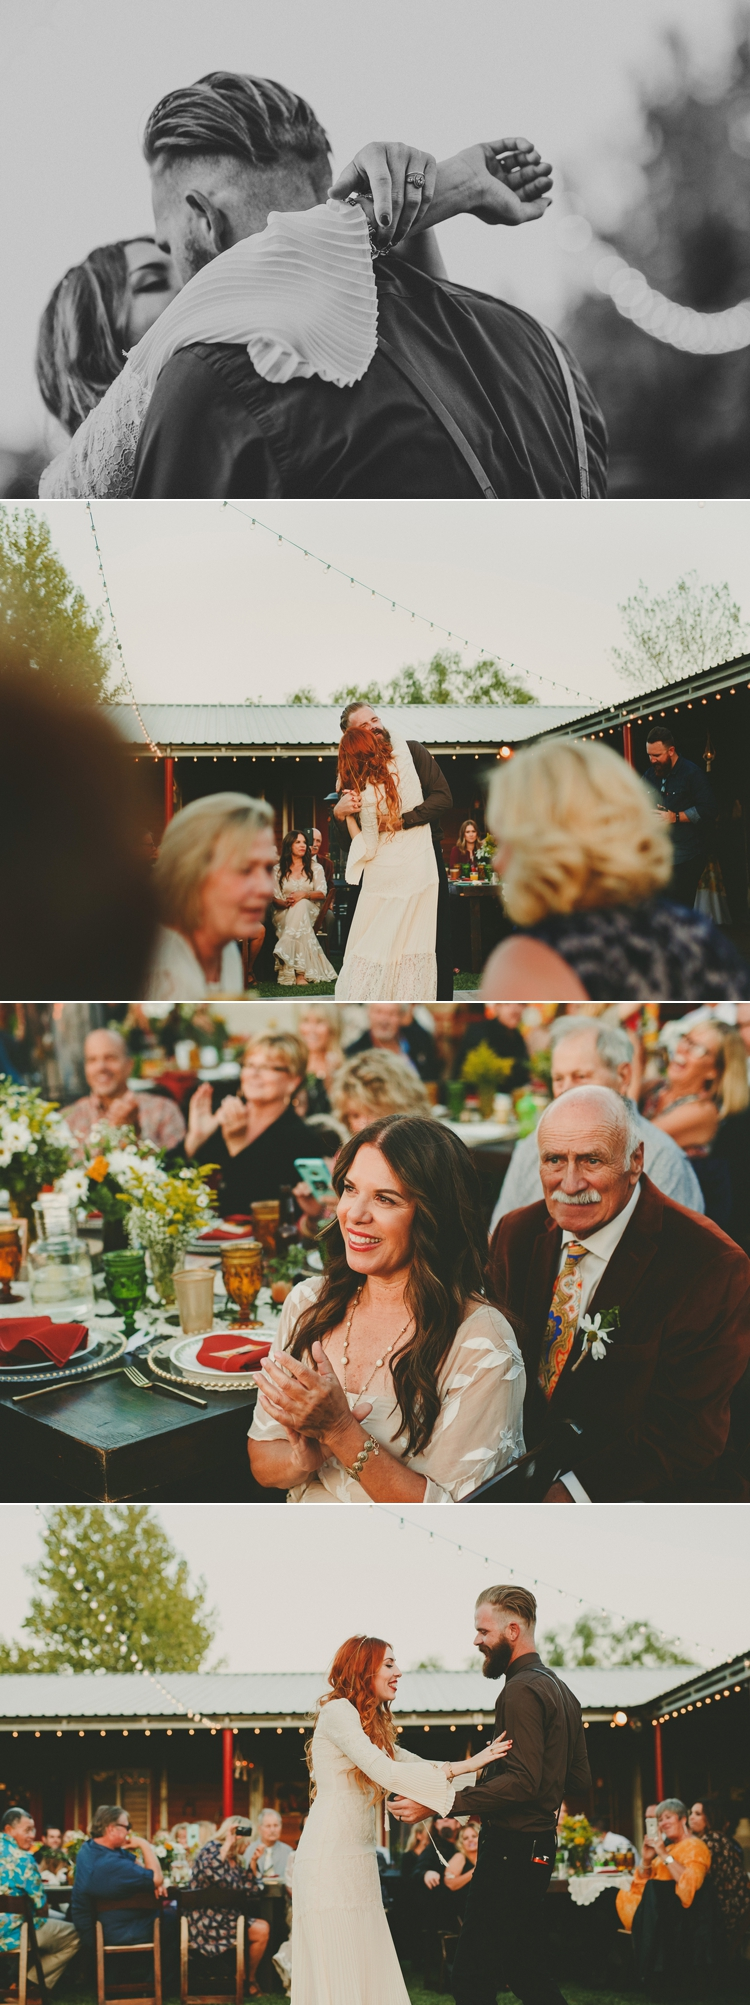 woodstock-inspired-wedding-photos-29